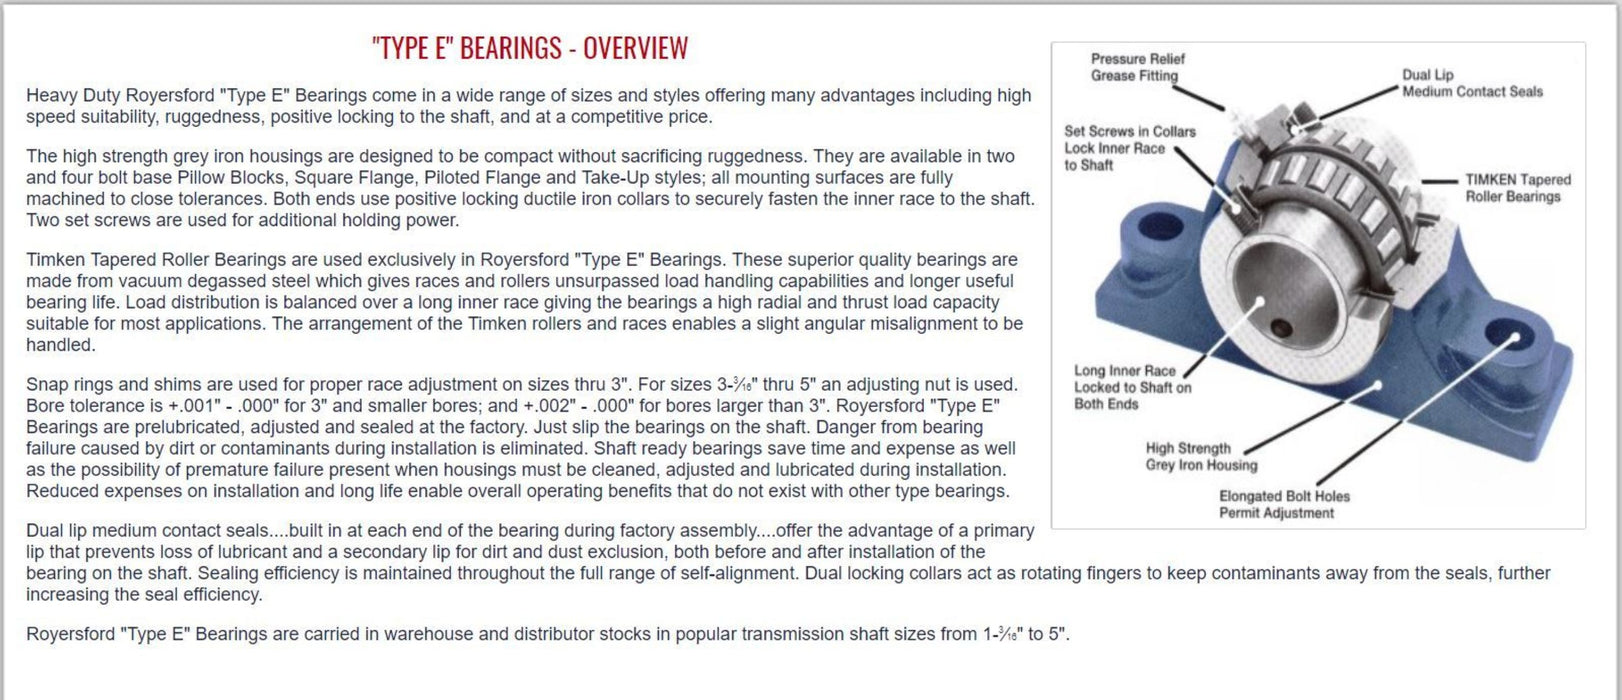 20-04-0212, ROYERSFORD TYPE E 4-Bolt Pillow Block Bearing, 2-3/4 with Timken Tapered Roller Bearings